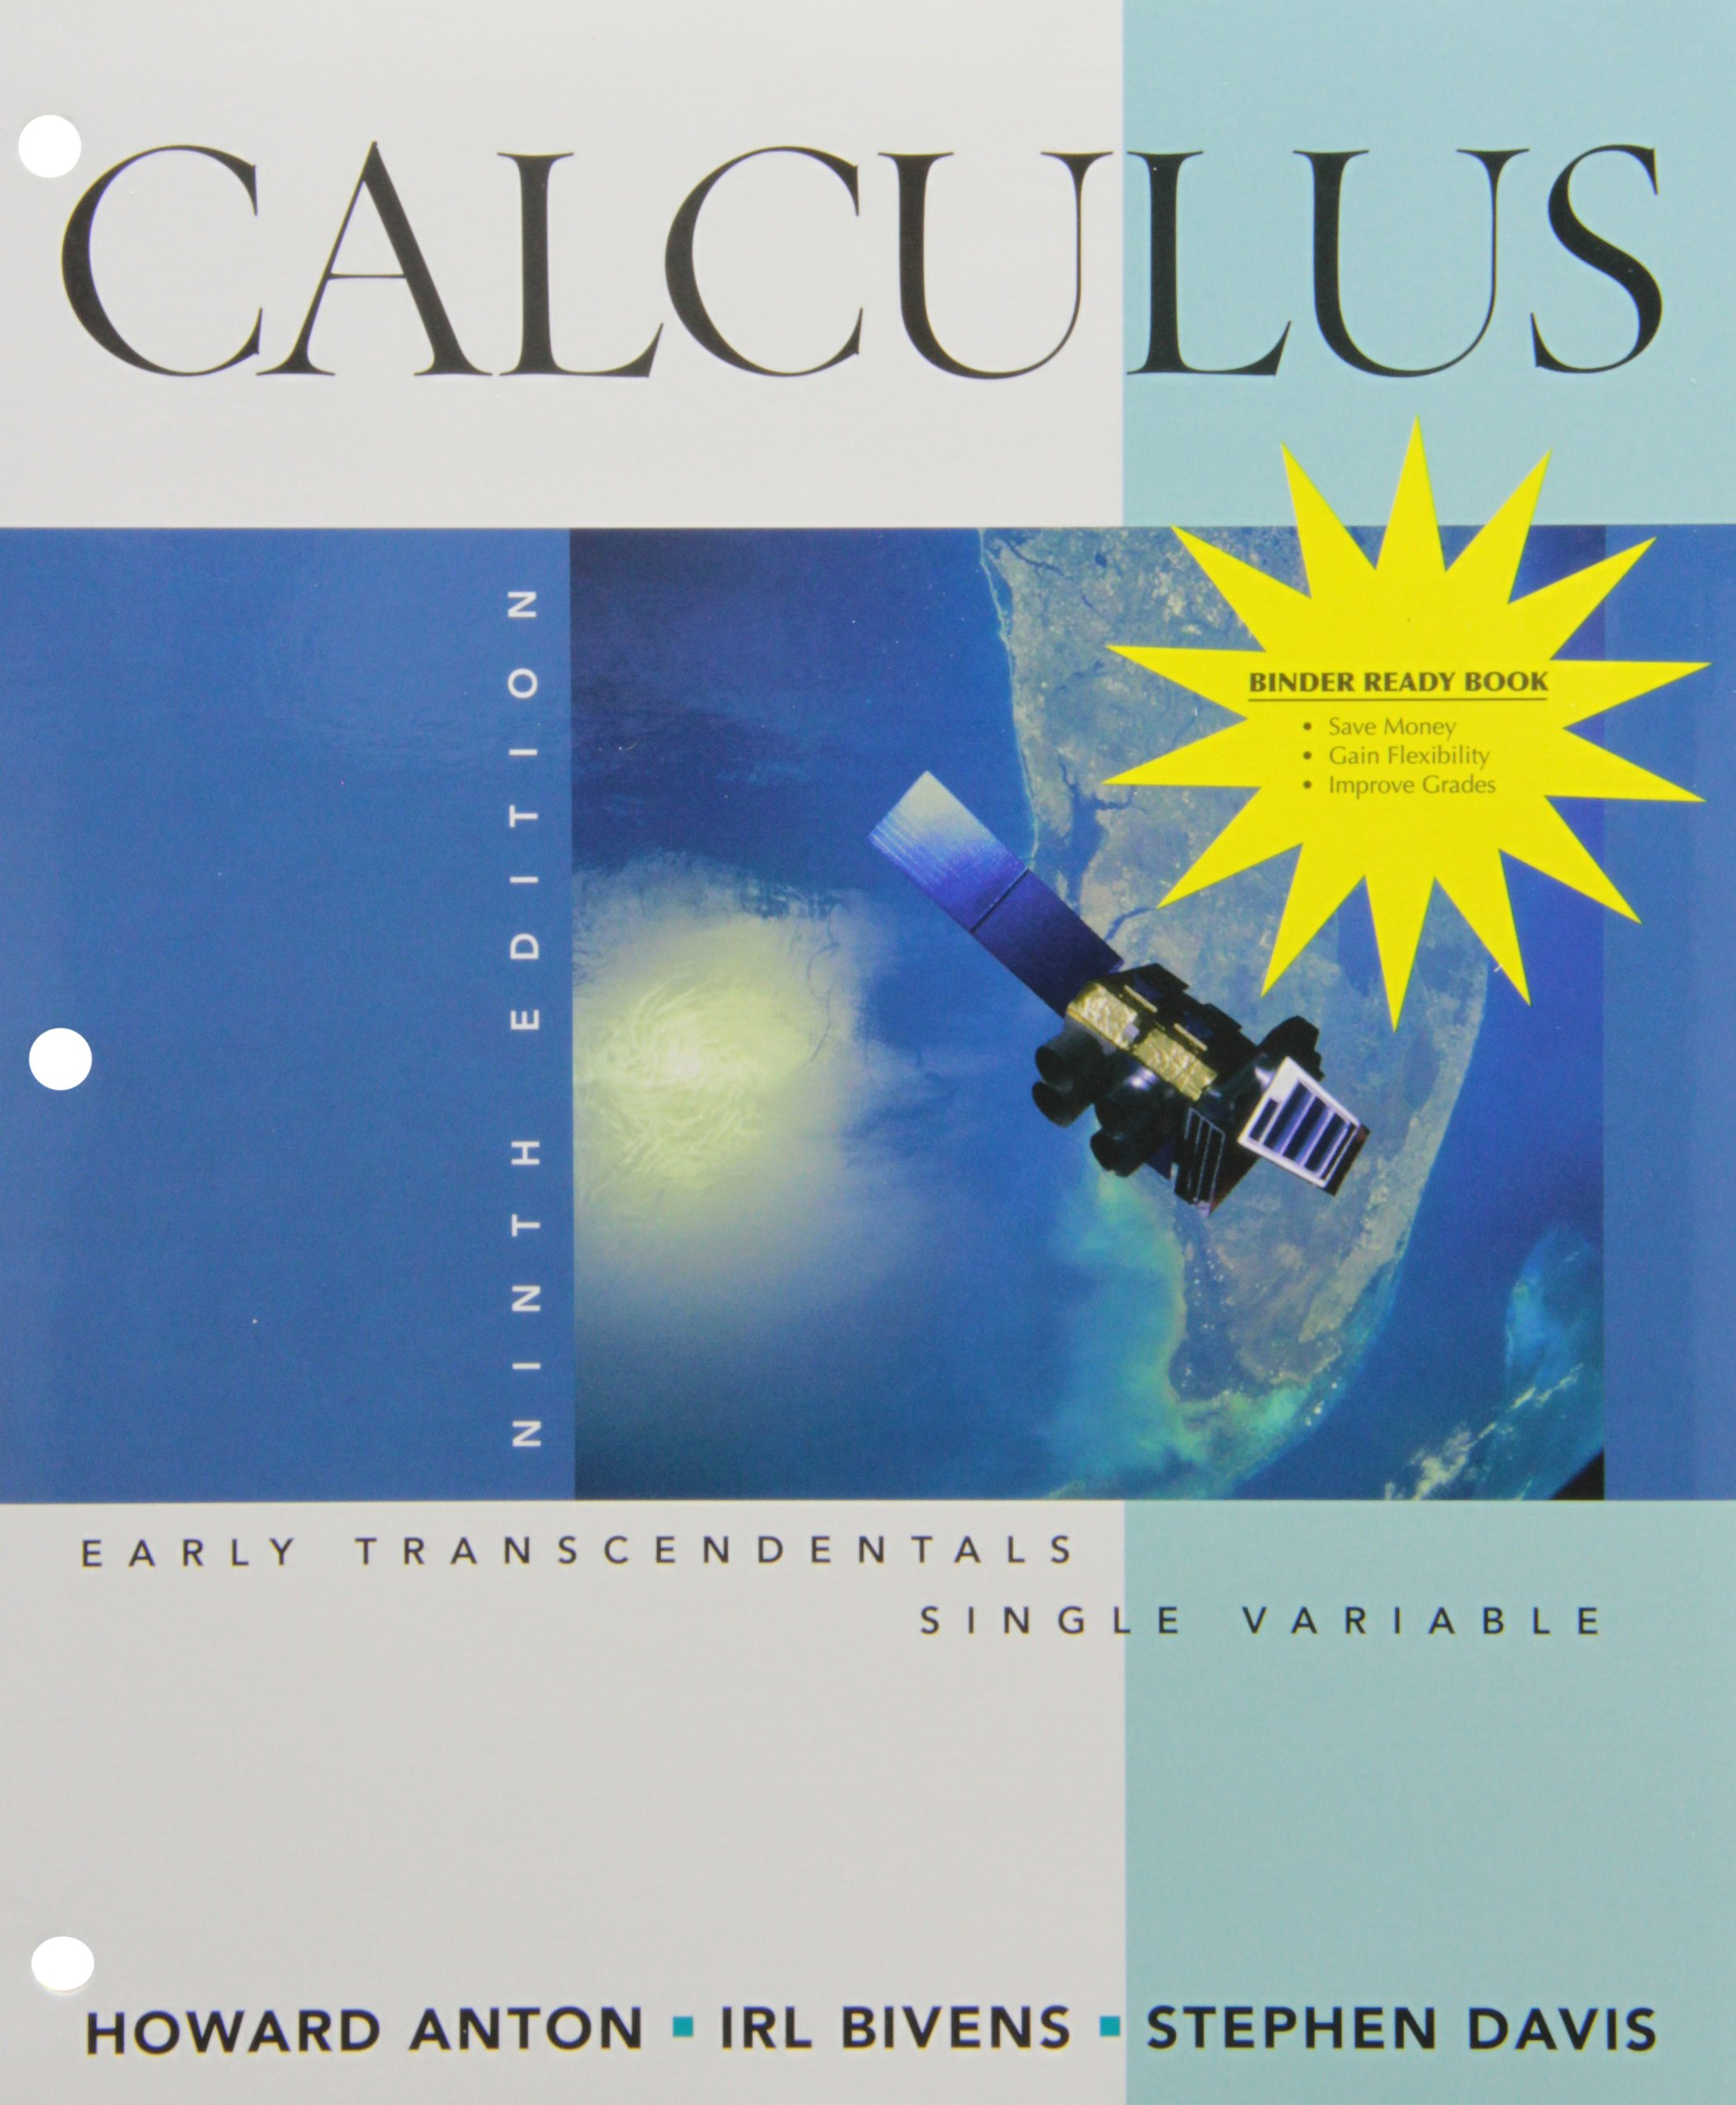 Calculus Early Transcendentals Single Variable 9th Edition Binder Ready  Version with Student Solutions Manual Set: Howard Anton, Irl Bivens,  Stephen Davis: ...